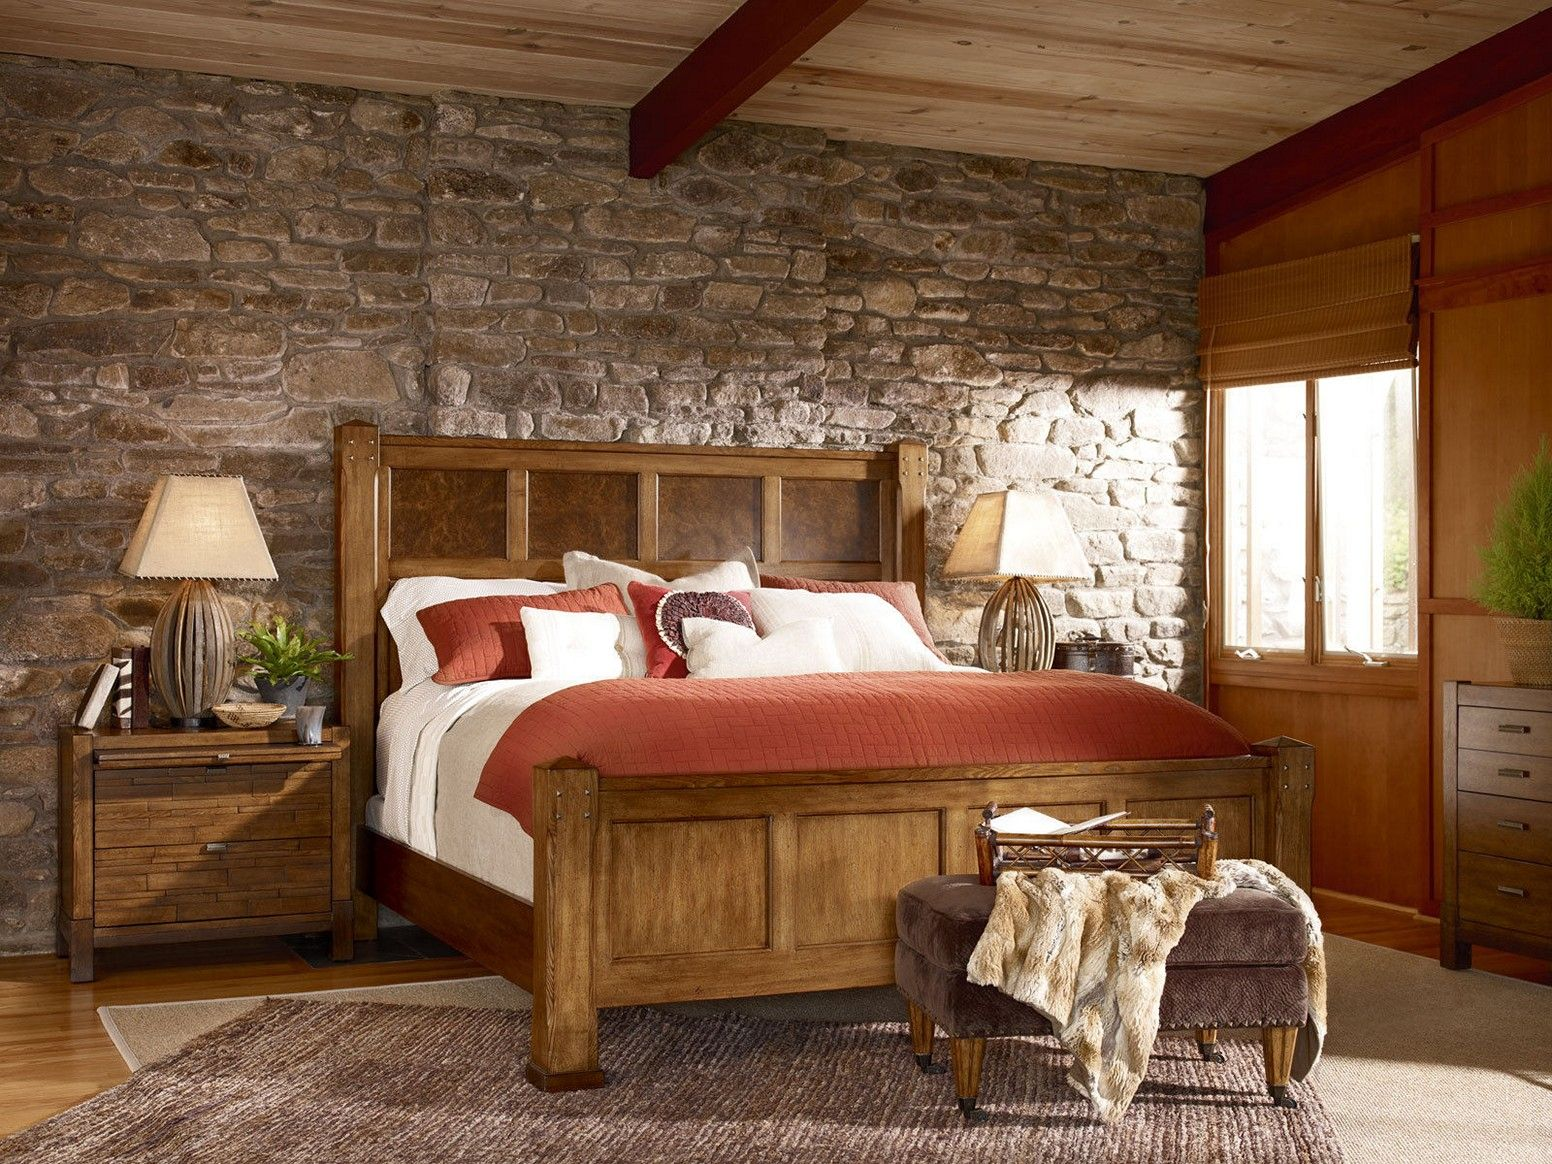 Rustic Country Bedroom Decorating Ideas  Interior Decor Captivating Rustic Country Bedroom Decorating Ideas Design Ideas